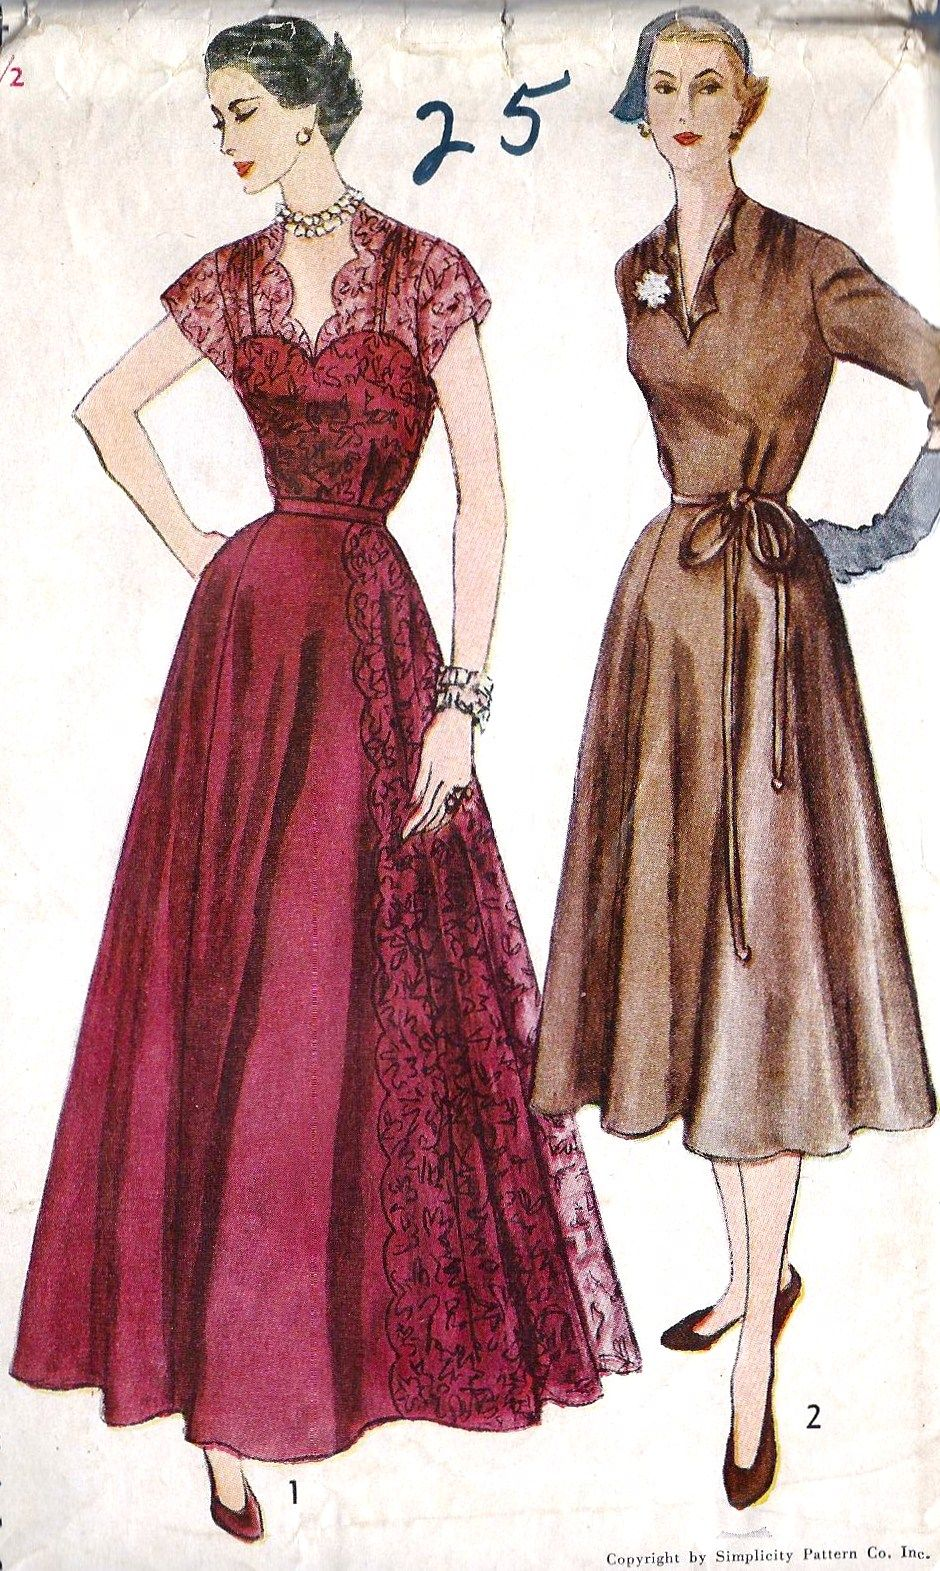 Smitten with the lace dress on the left vintage sewing pattern